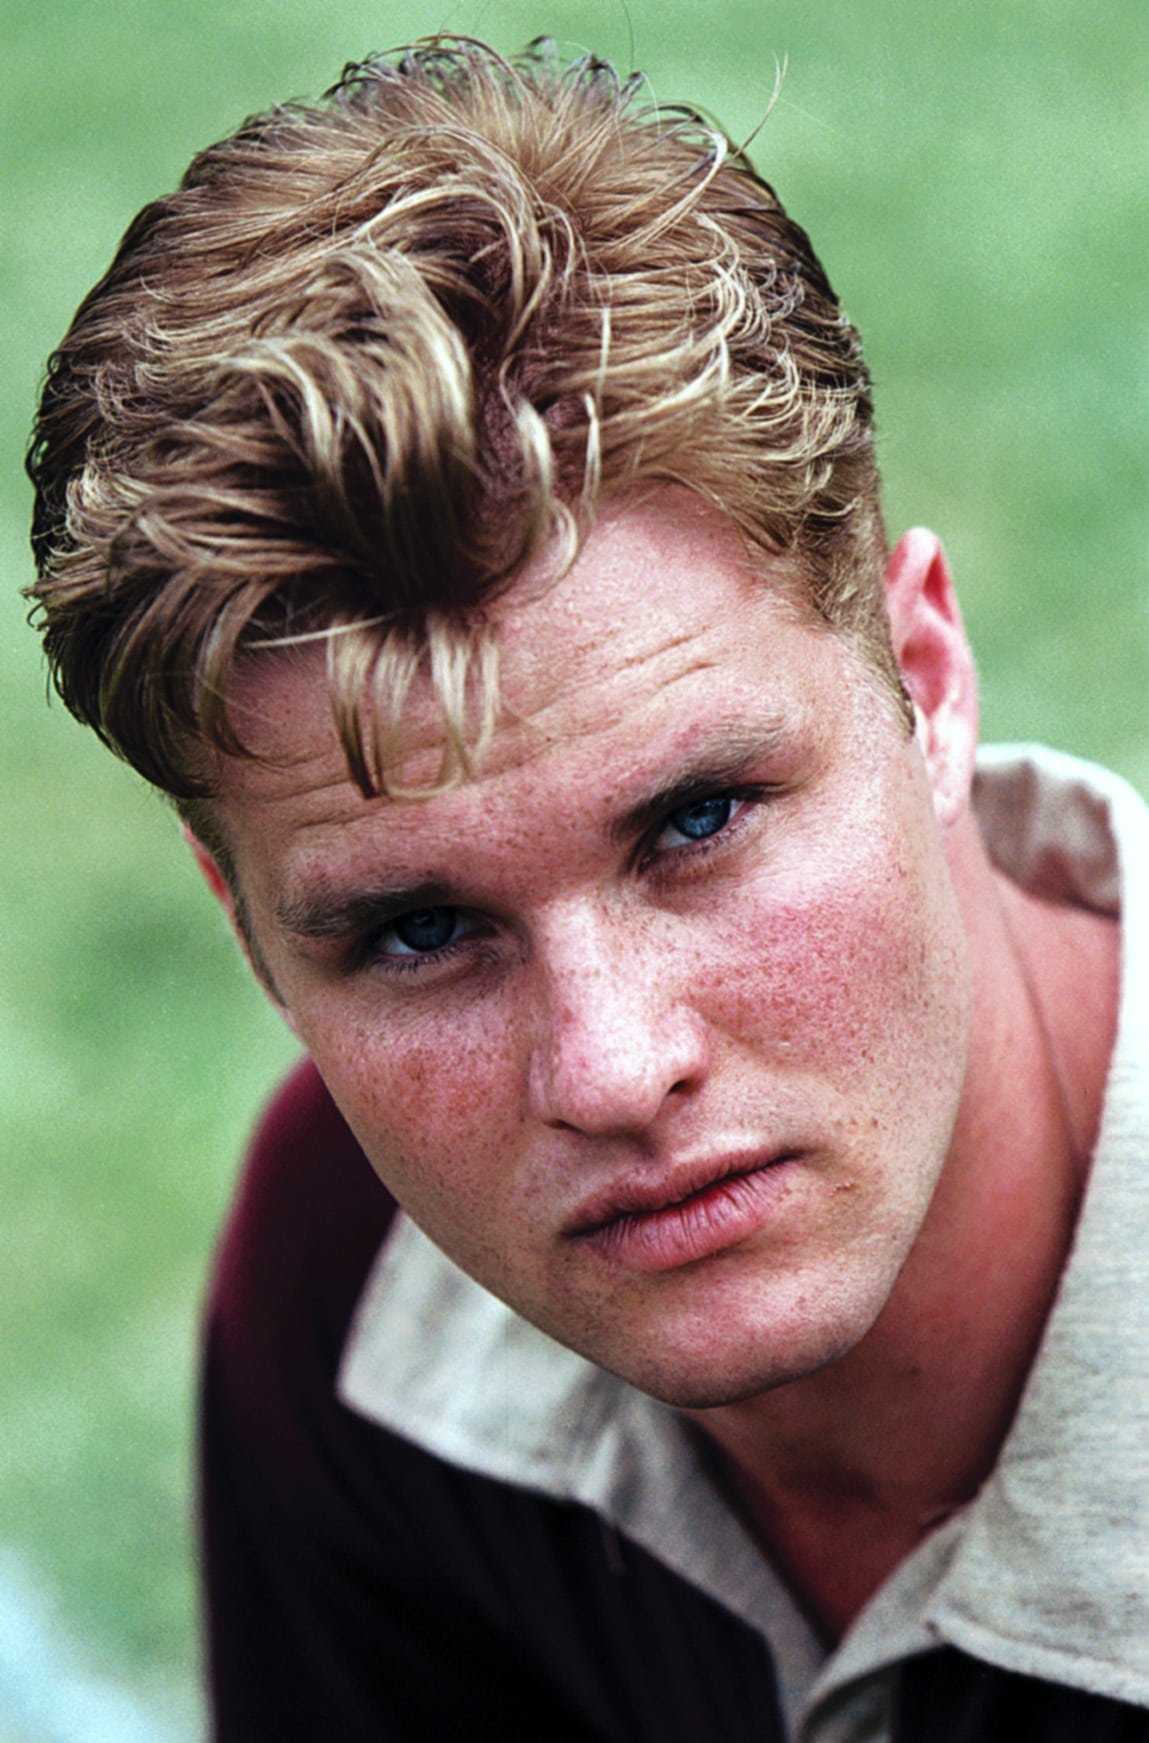 THE GAME OF THEIR LIVES, Zachery Ty Bryan